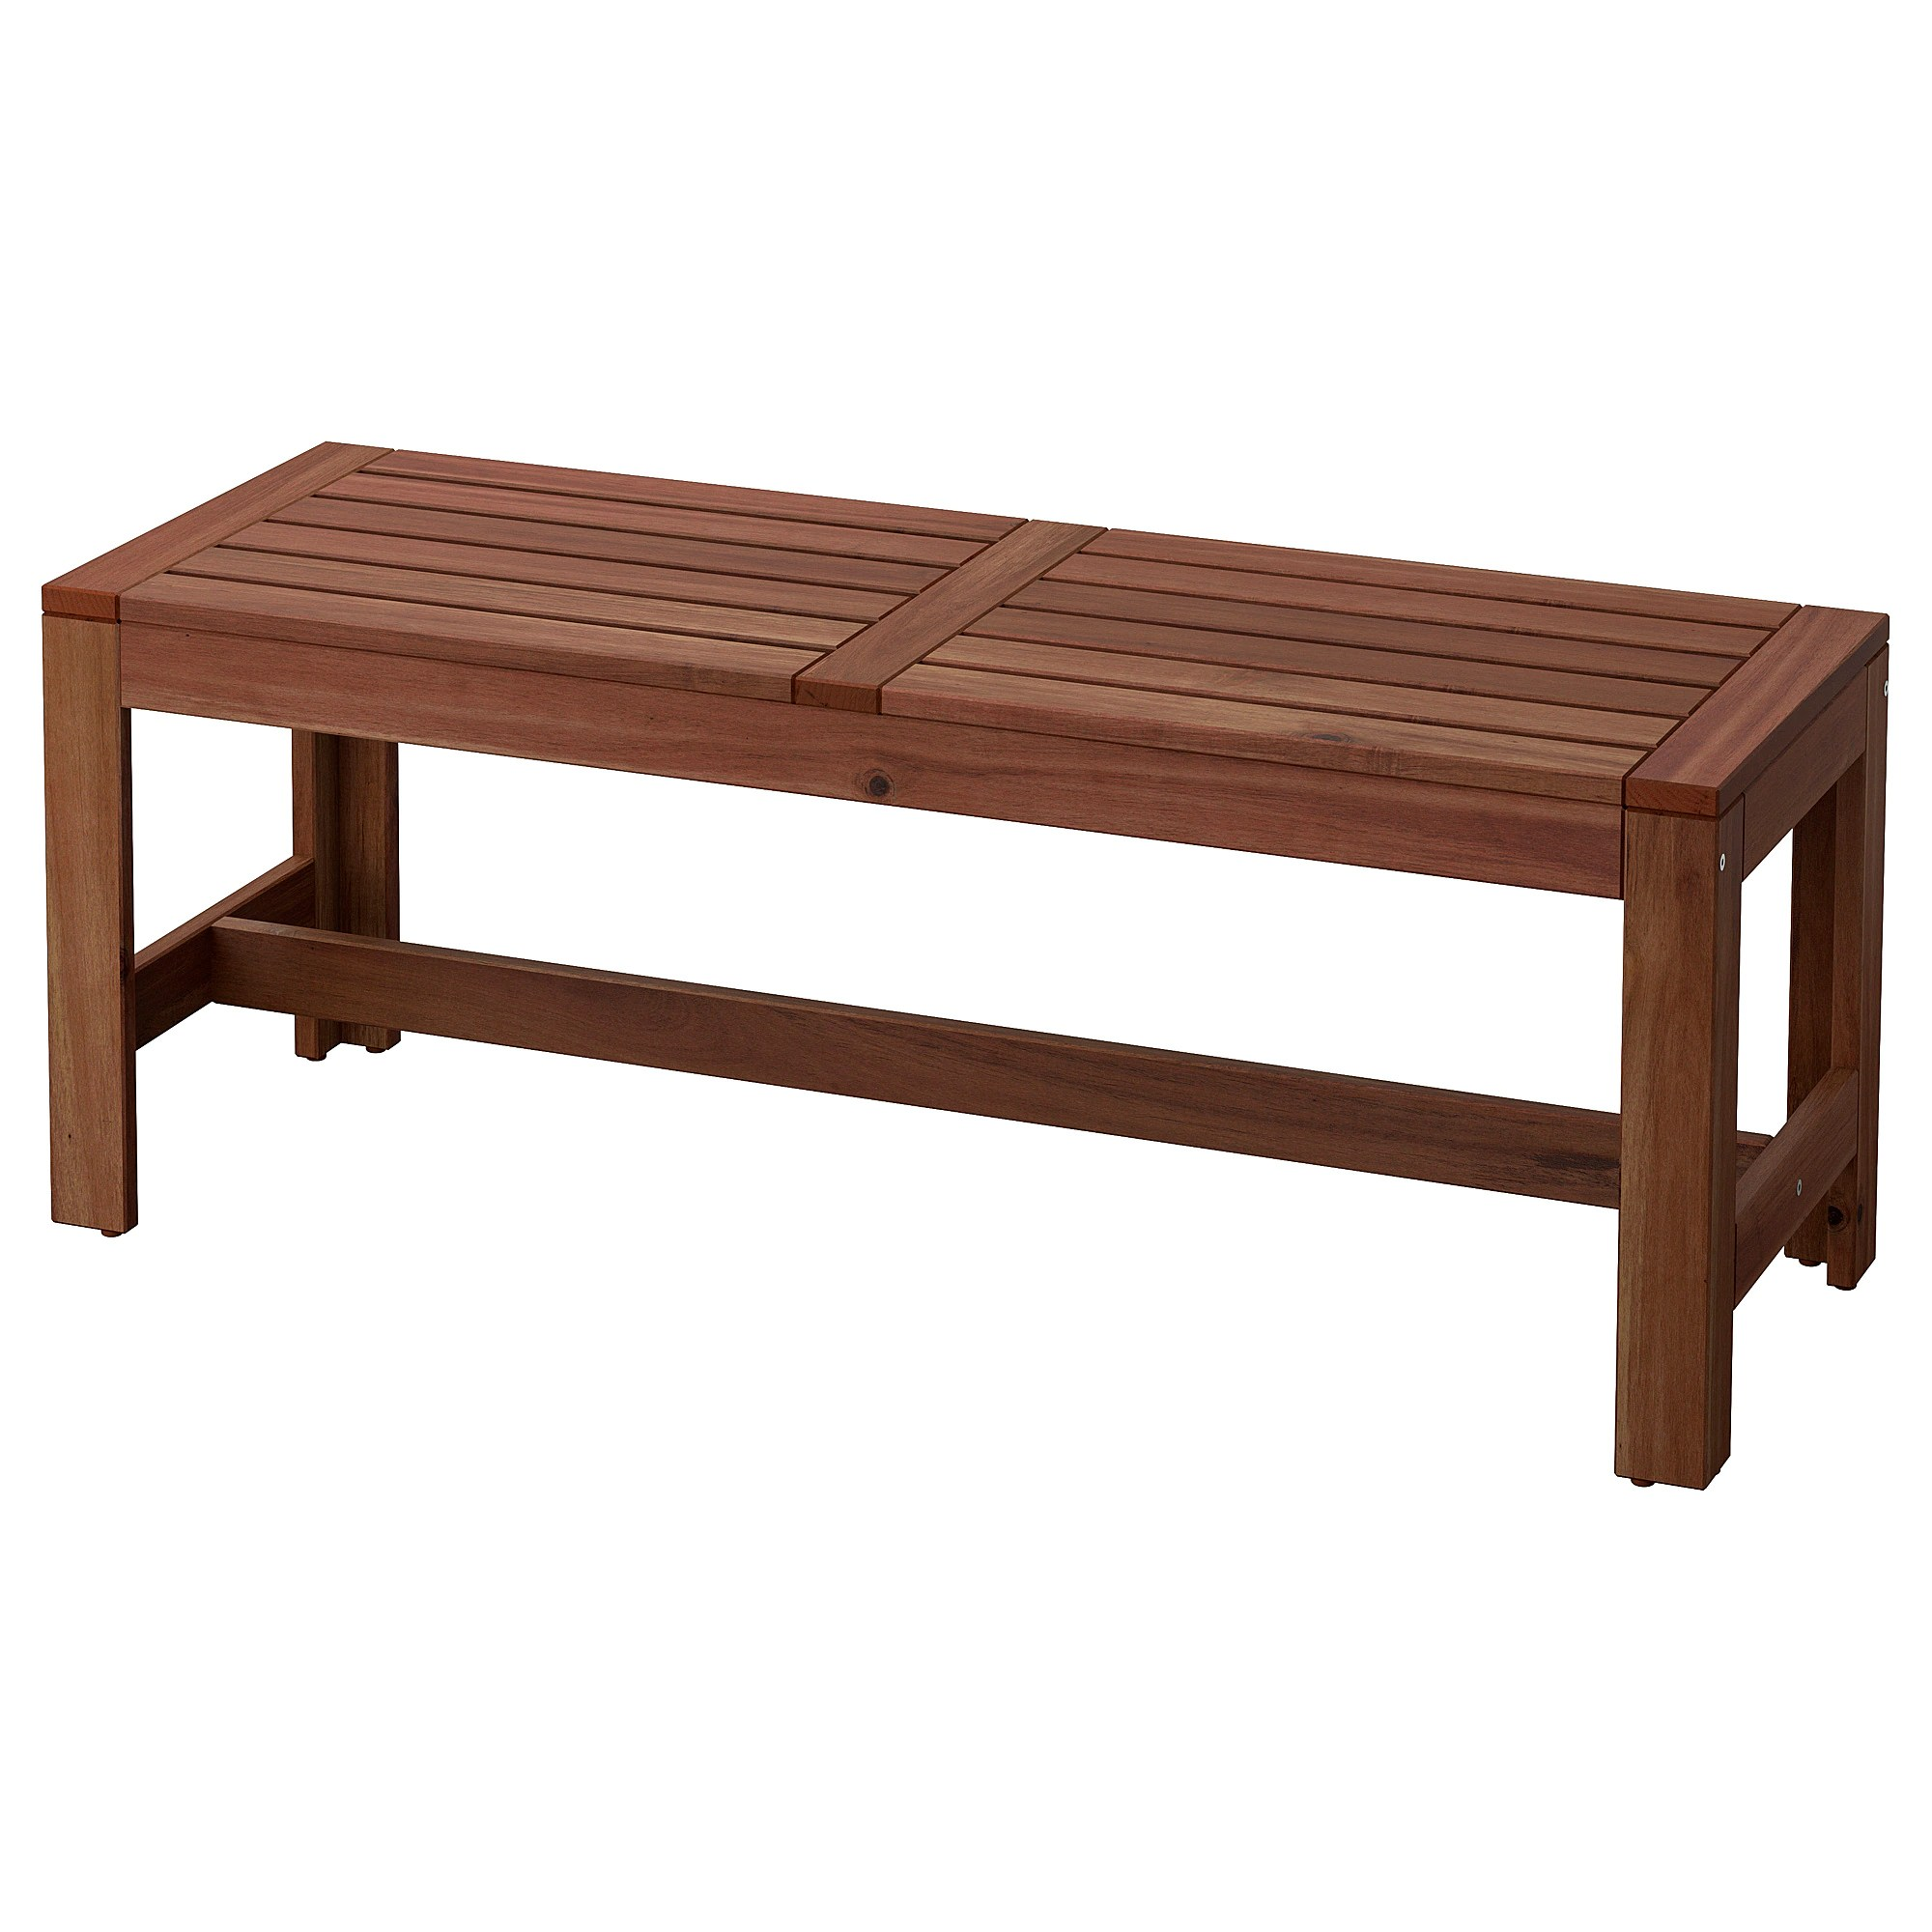 196 Pplar 214 Bench Outdoor Brown Stained Ikea